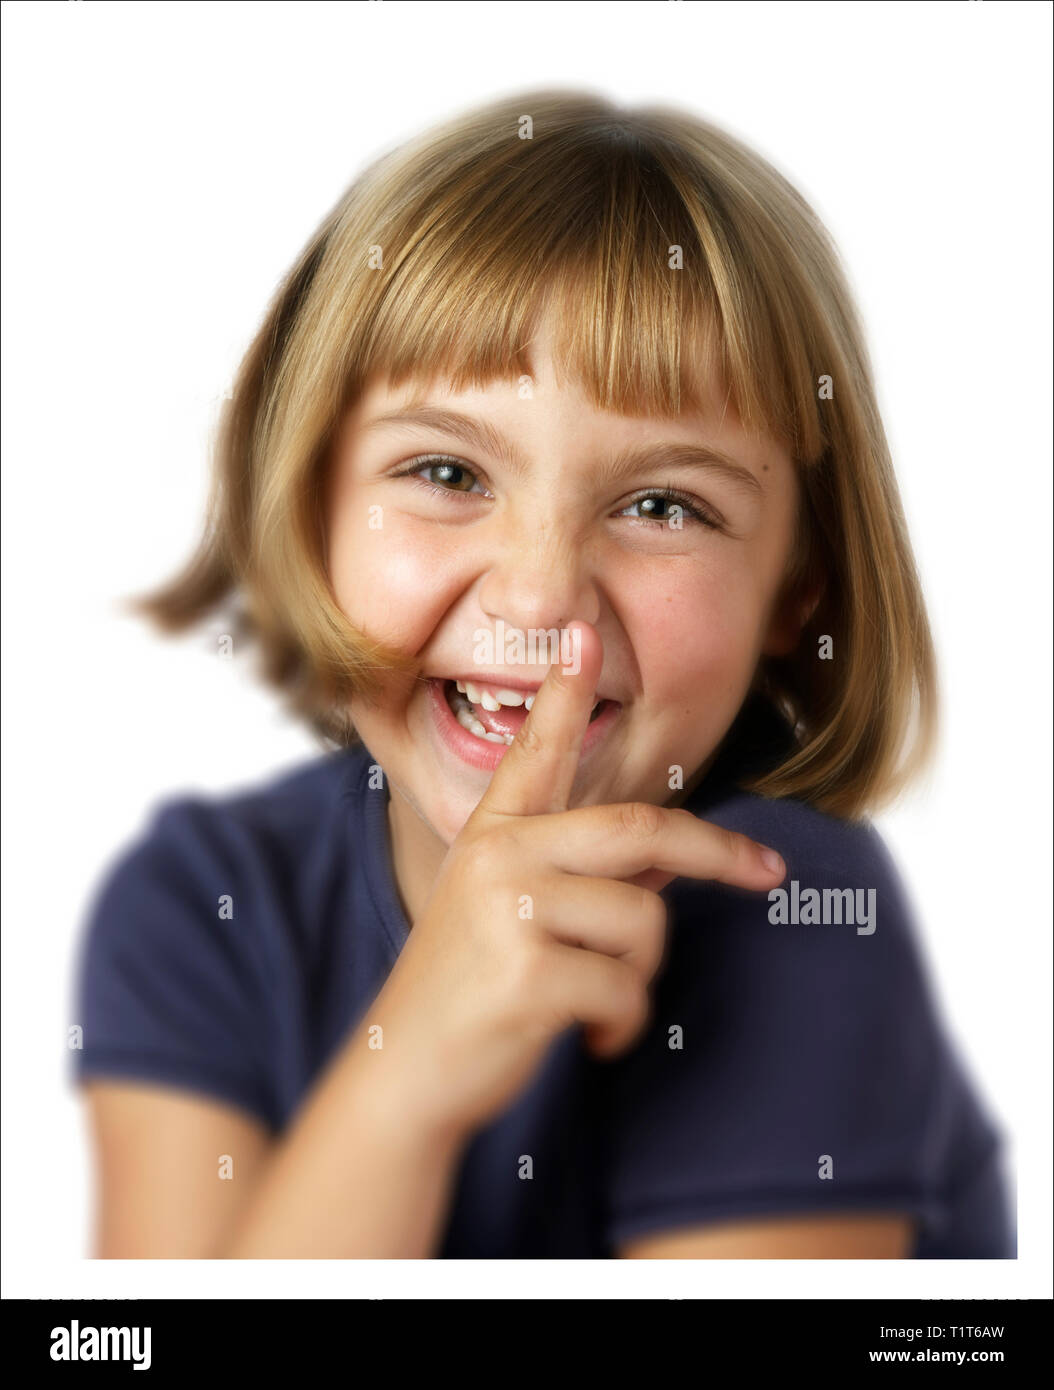 Cute blonde seven-year-old girl with finger to her lips - Stock Image